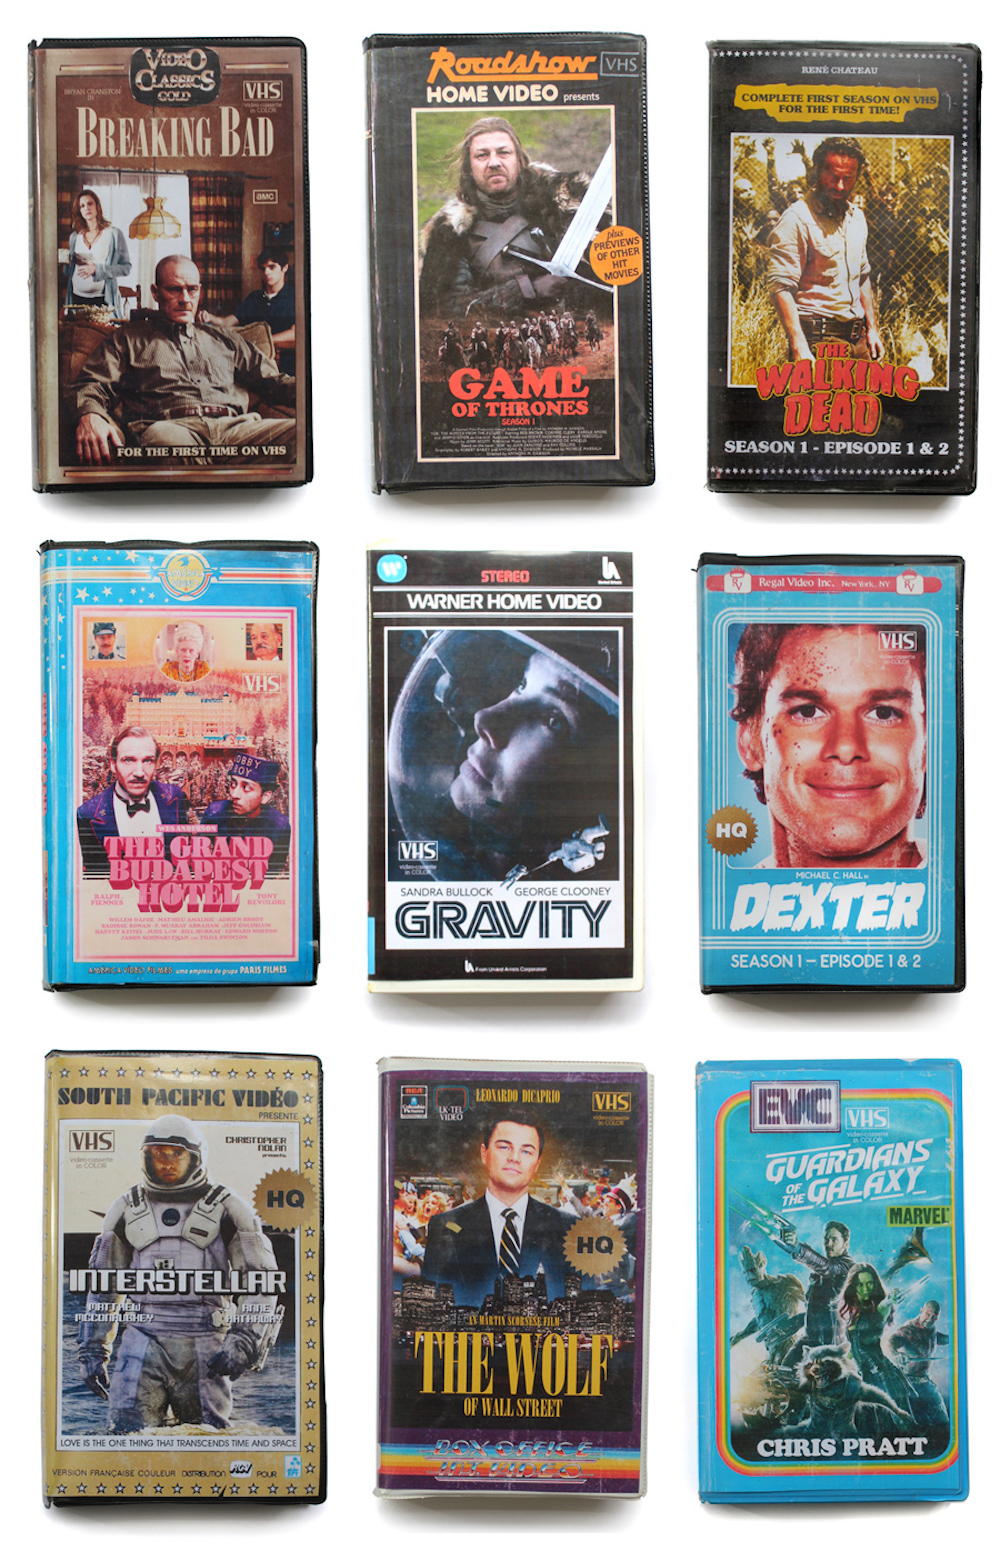 80's VHS covers